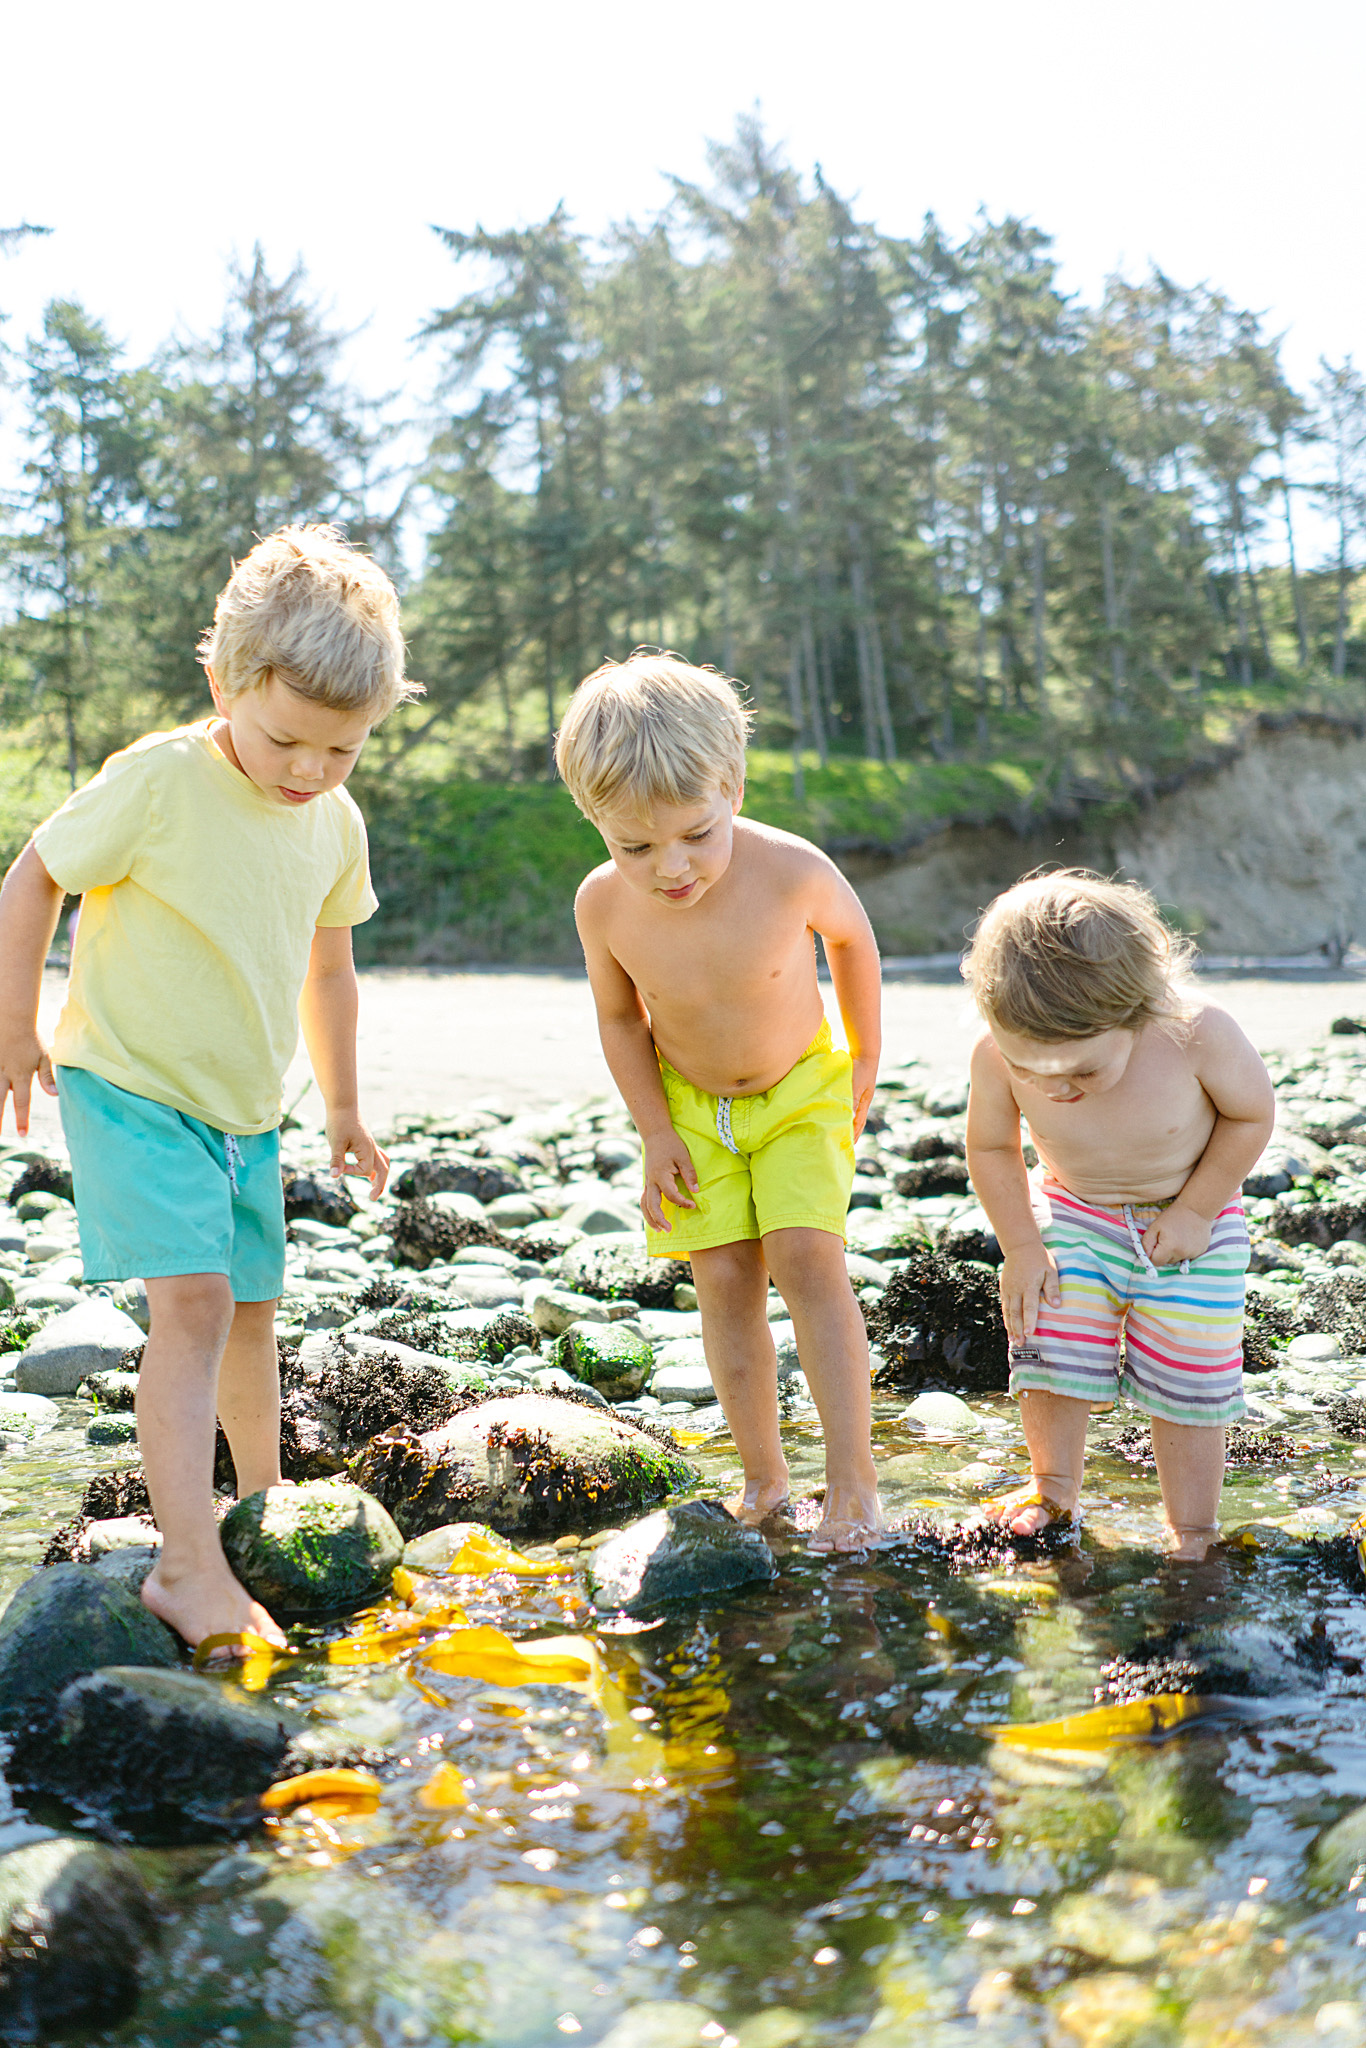 Best Beaches for Tide Pooling on the Puget Sound